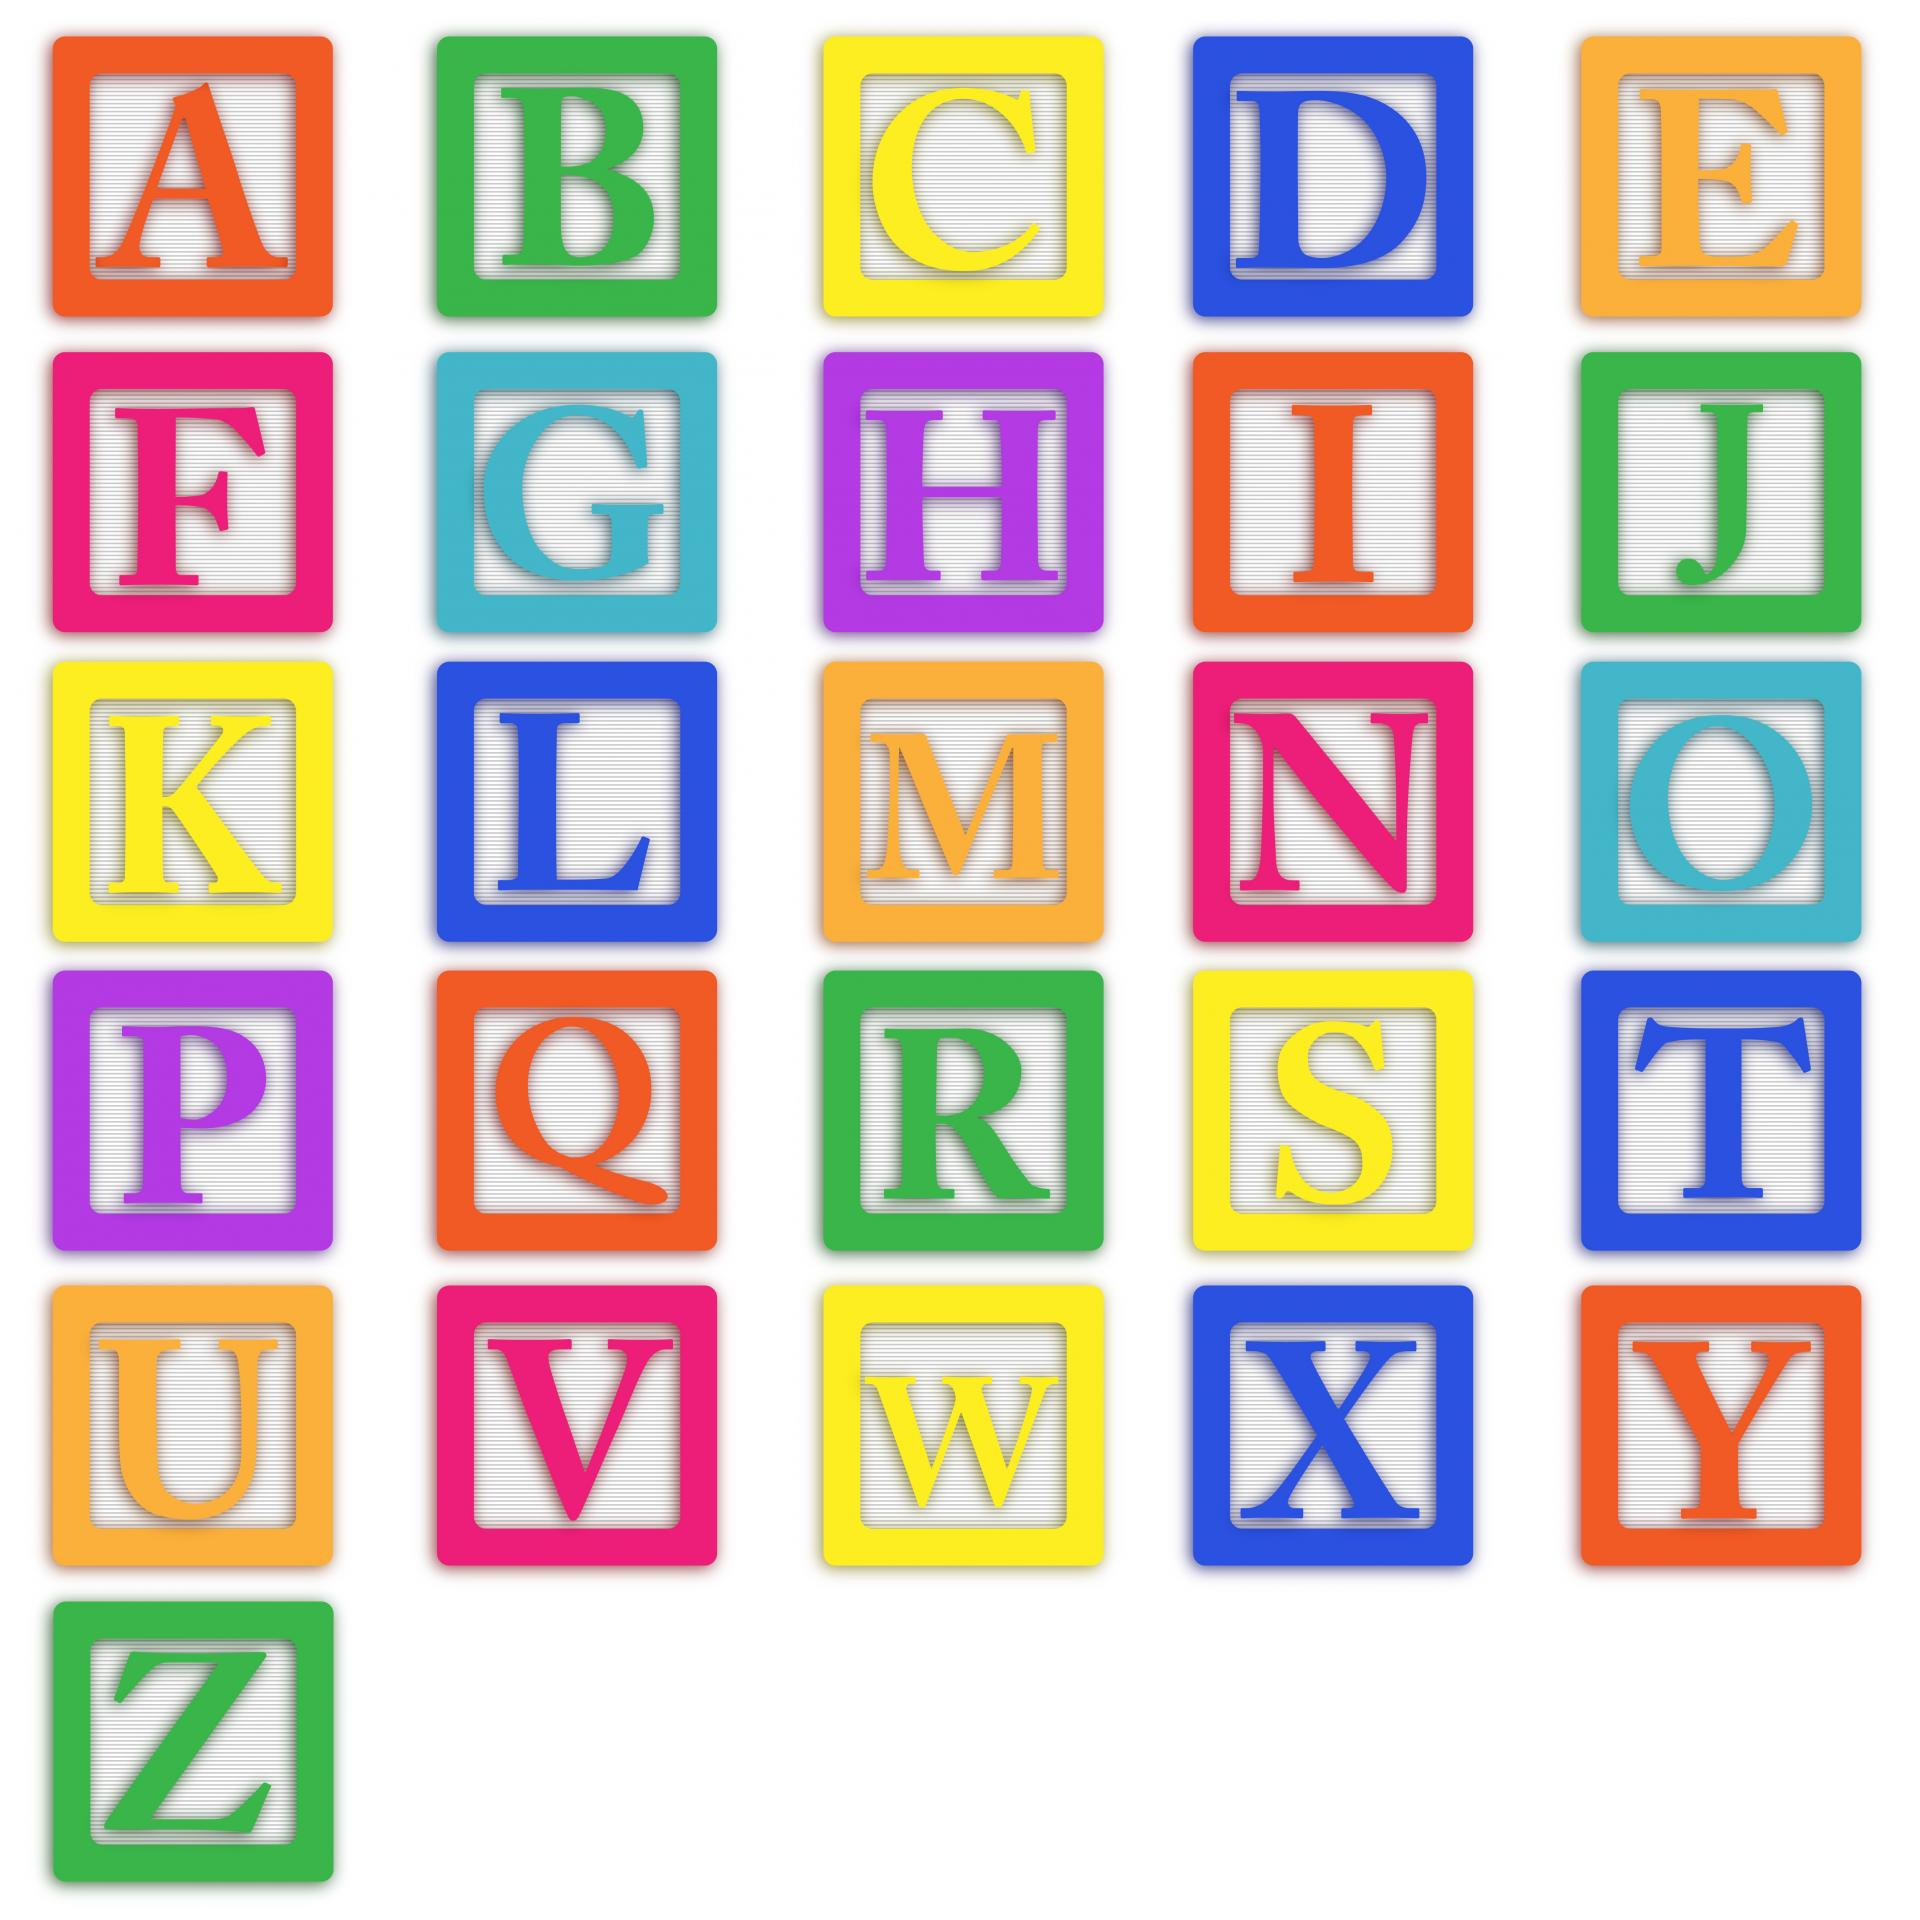 Letter clipart alphabet block Pictures Letters Stock Photo Free